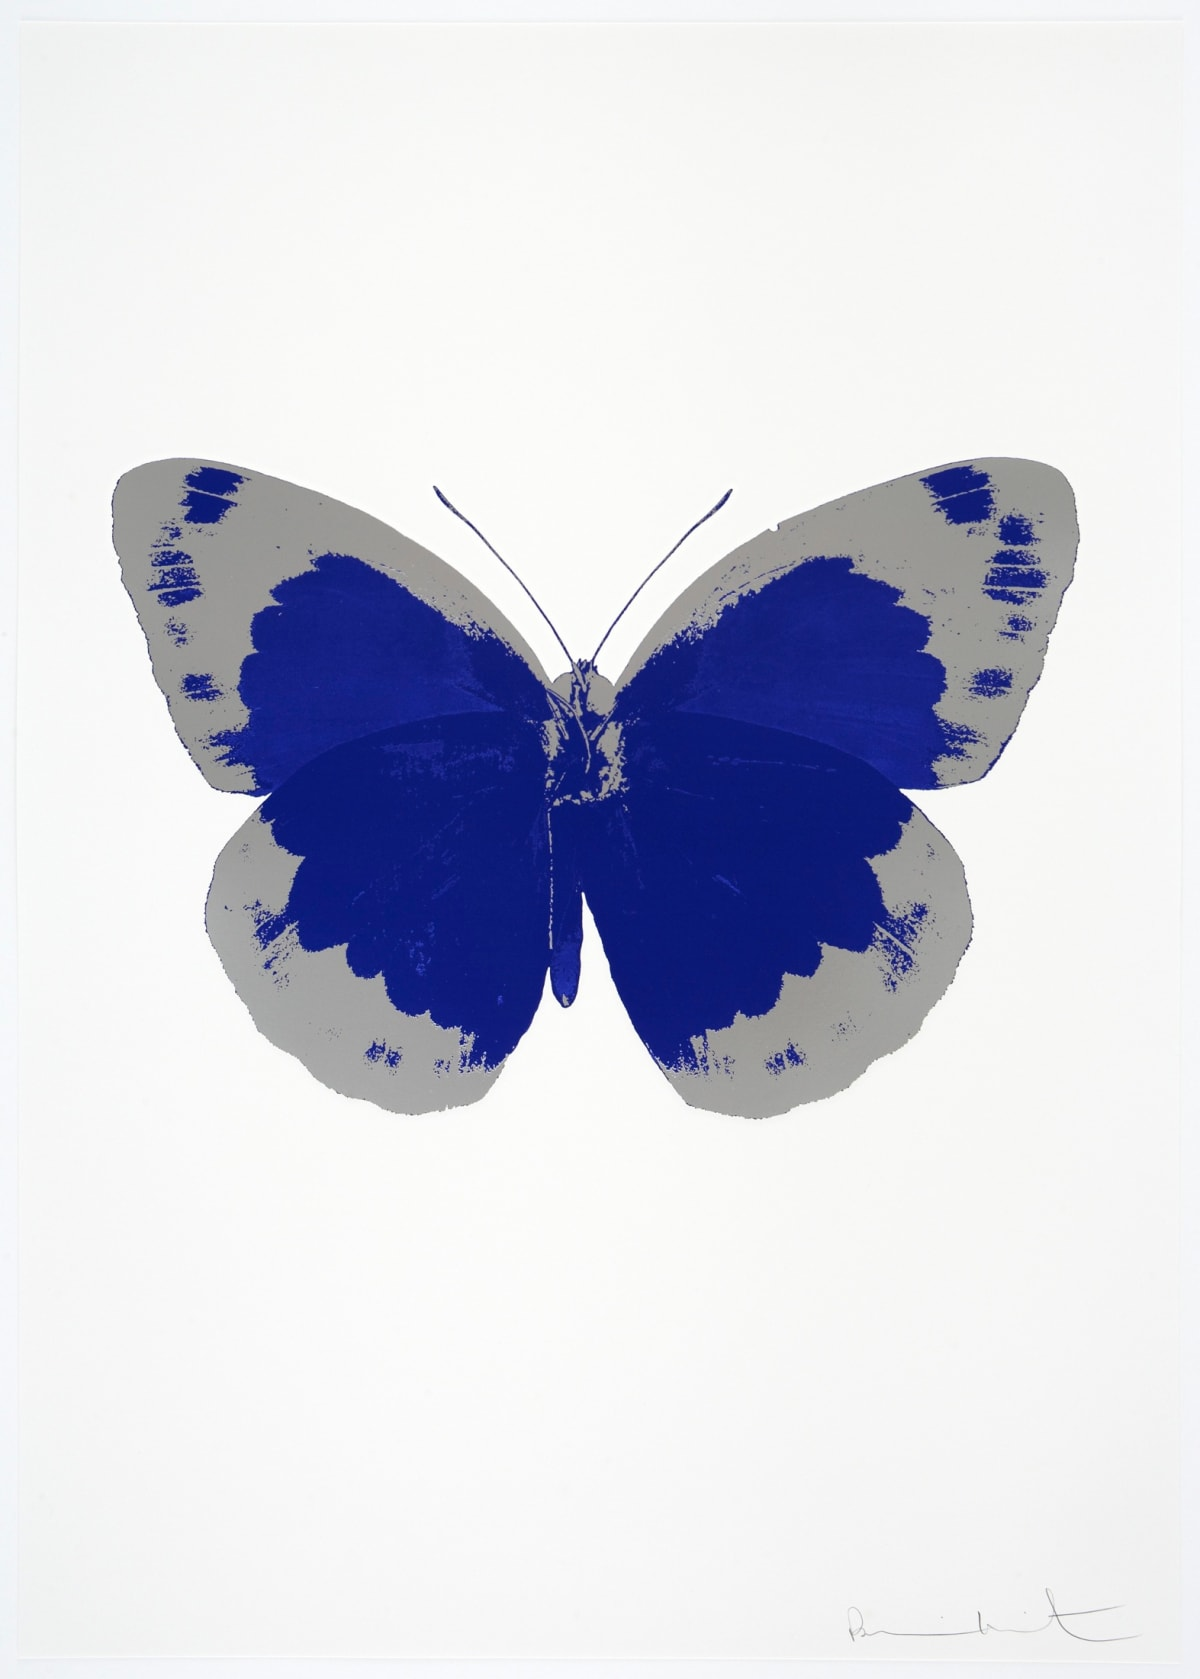 Damien Hirst The Souls II - Westminster Blue/Silver Gloss/Blind Impression, 2010 2 colour foil block on 300gsm Arches 88 archival paper. Signed and numbered. Published by Paul Stolper and Other Criteria 72 x 51cm OC7823 / 658-6 Edition of 15